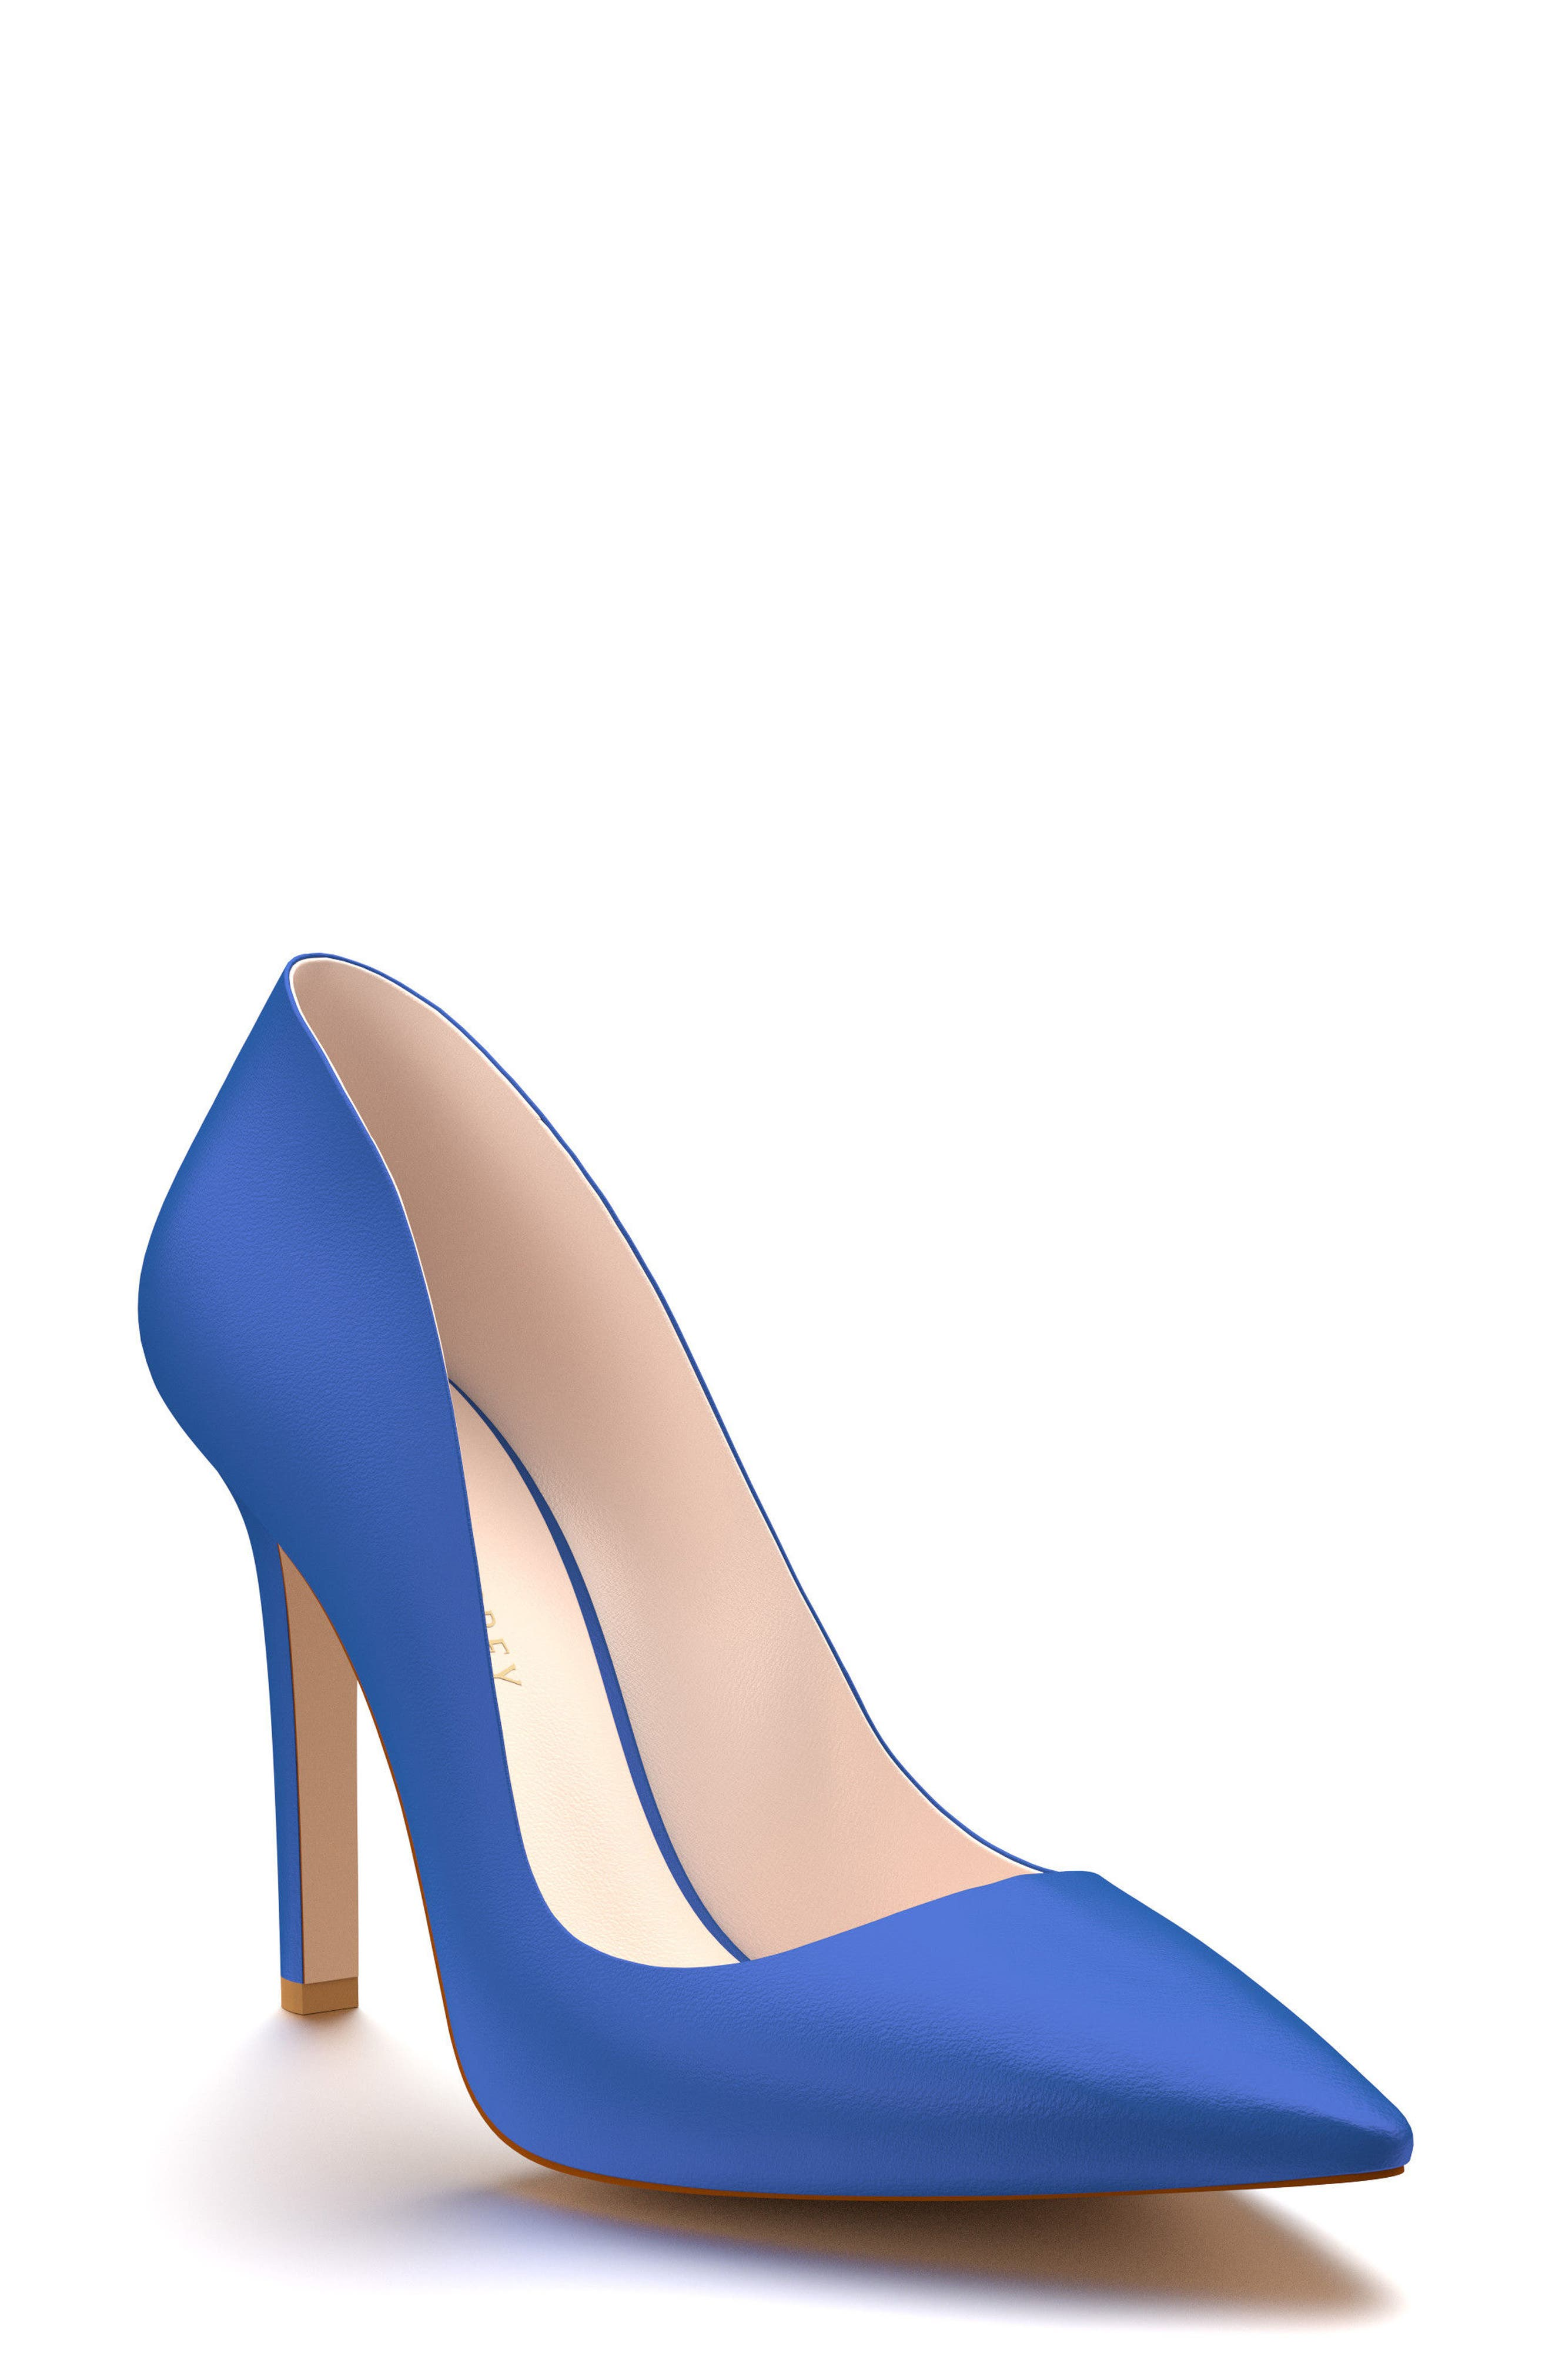 Alternate Image 1 Selected - Shoes of Prey Pointy Toe Pump (Women)